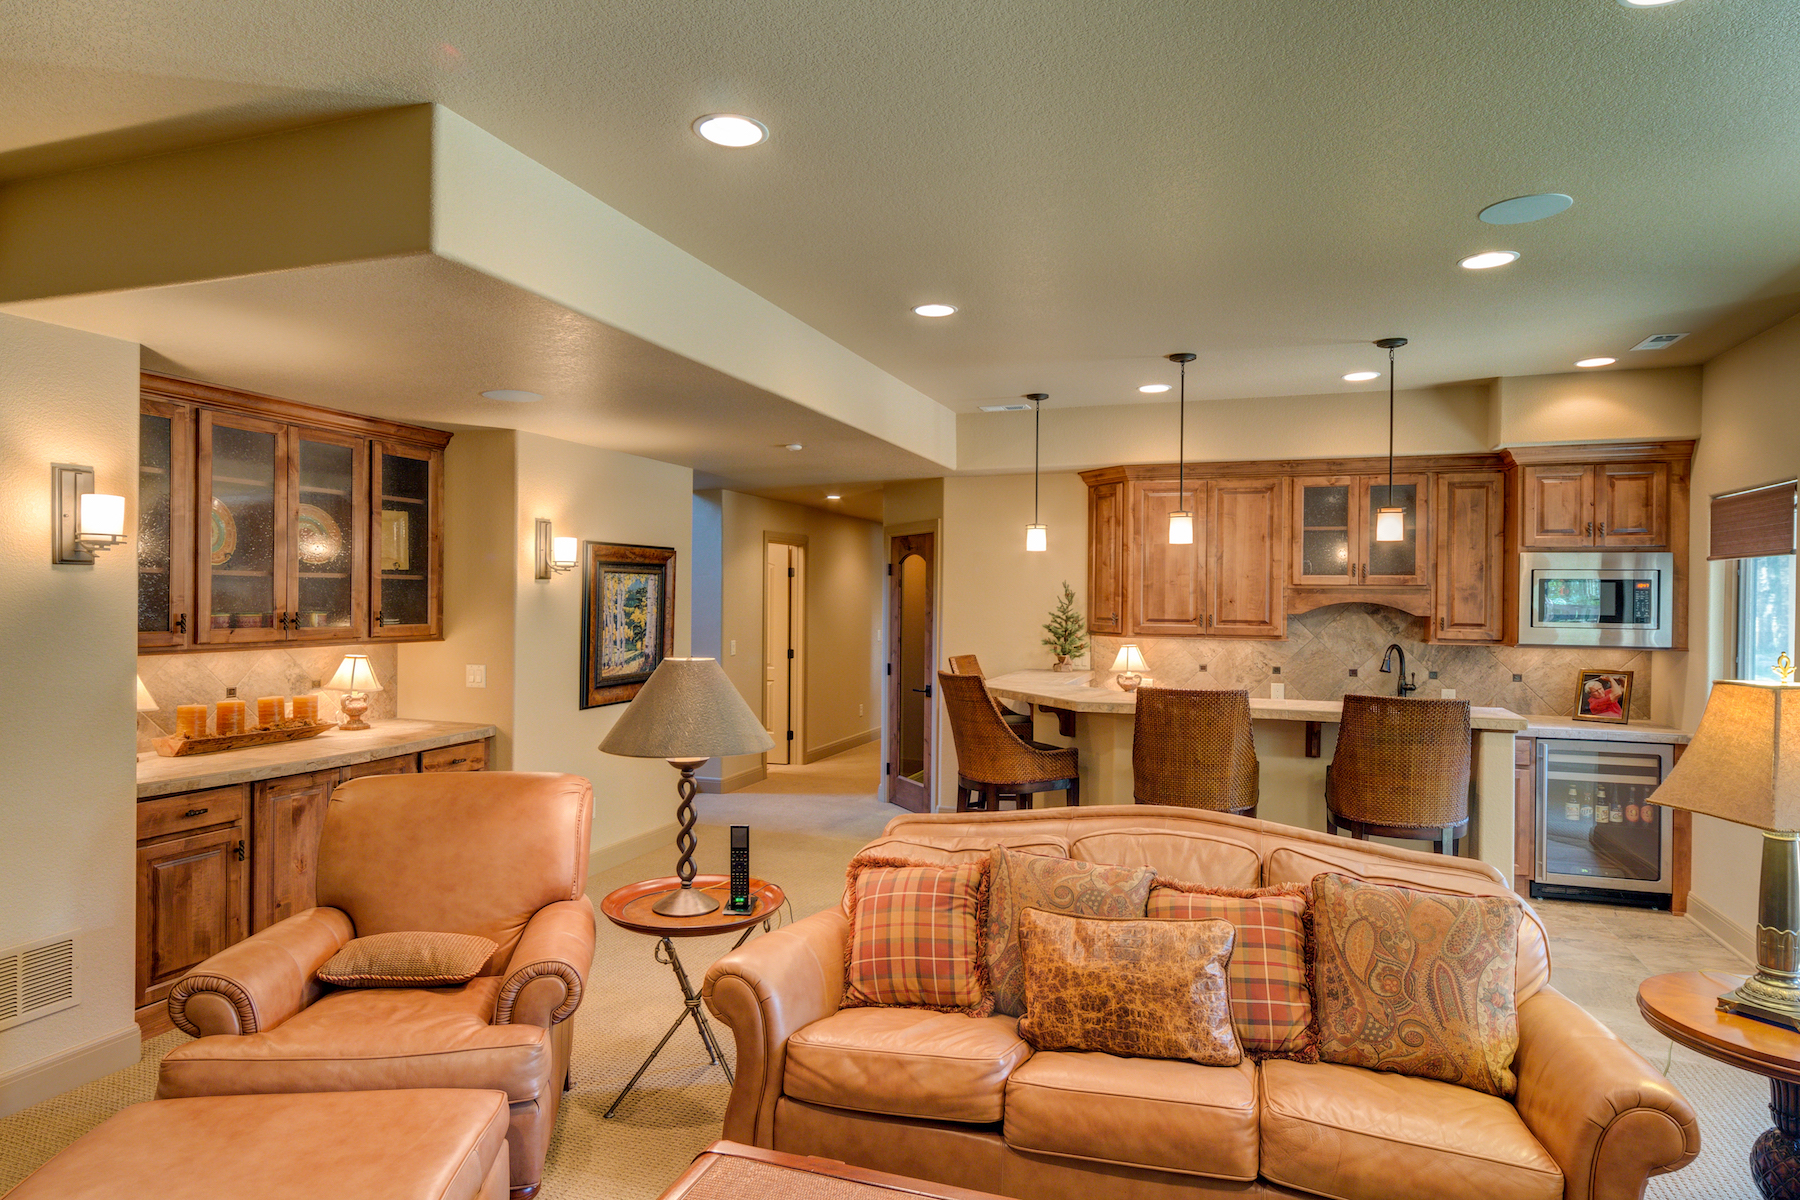 22 - Lower Level Rec Room with Wet Bar, Wine Closet, and Built in Buffet.jpg